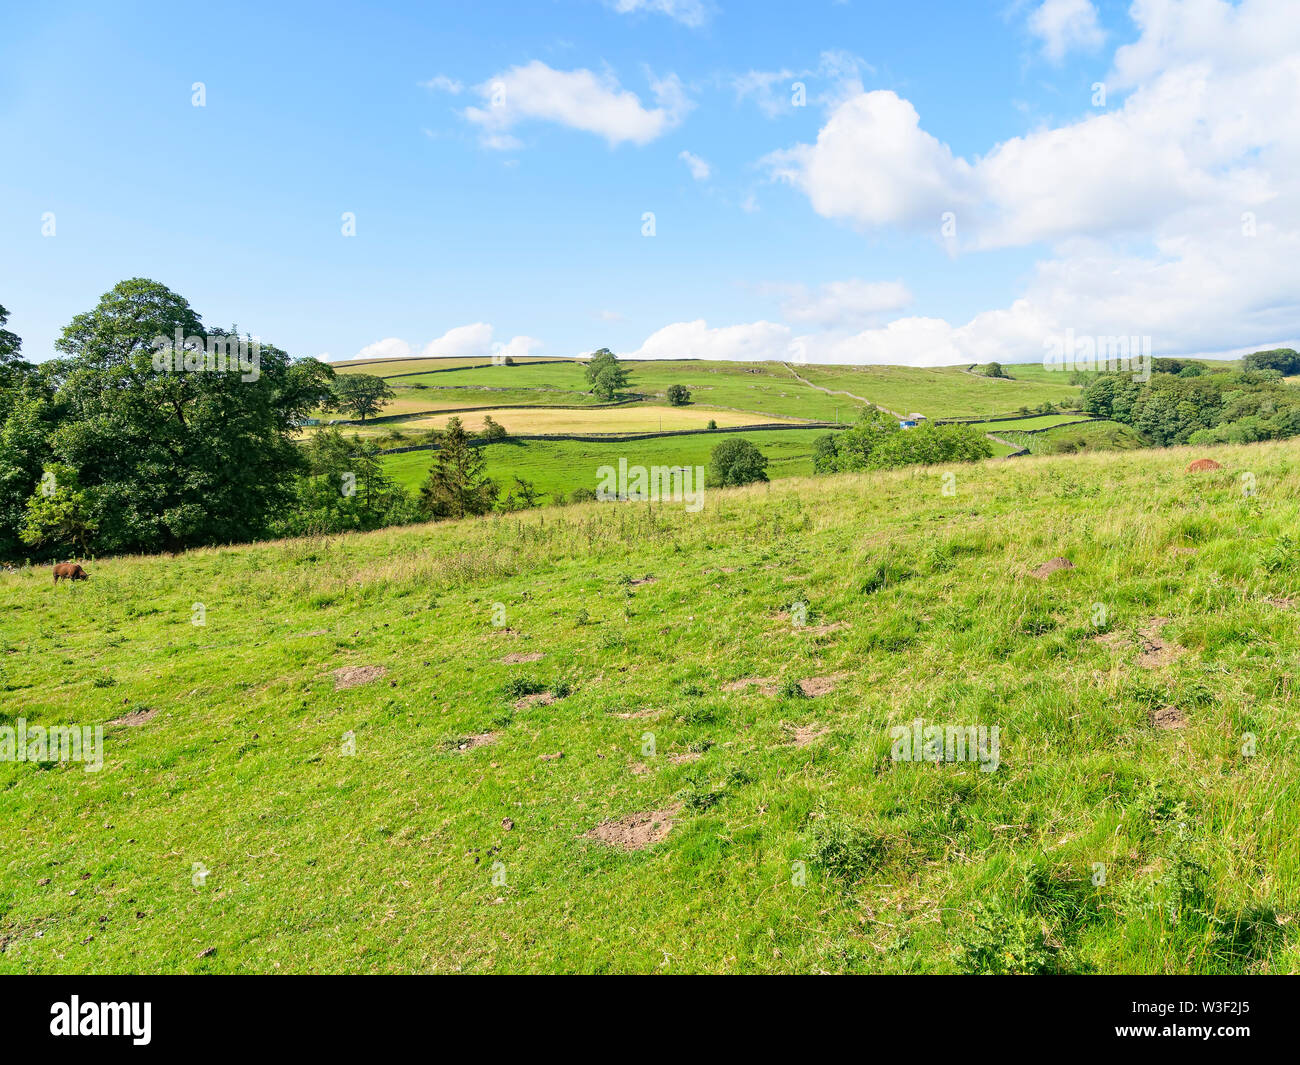 A summer day looking out over the countryside of the Yorkshire Dales. - Stock Image